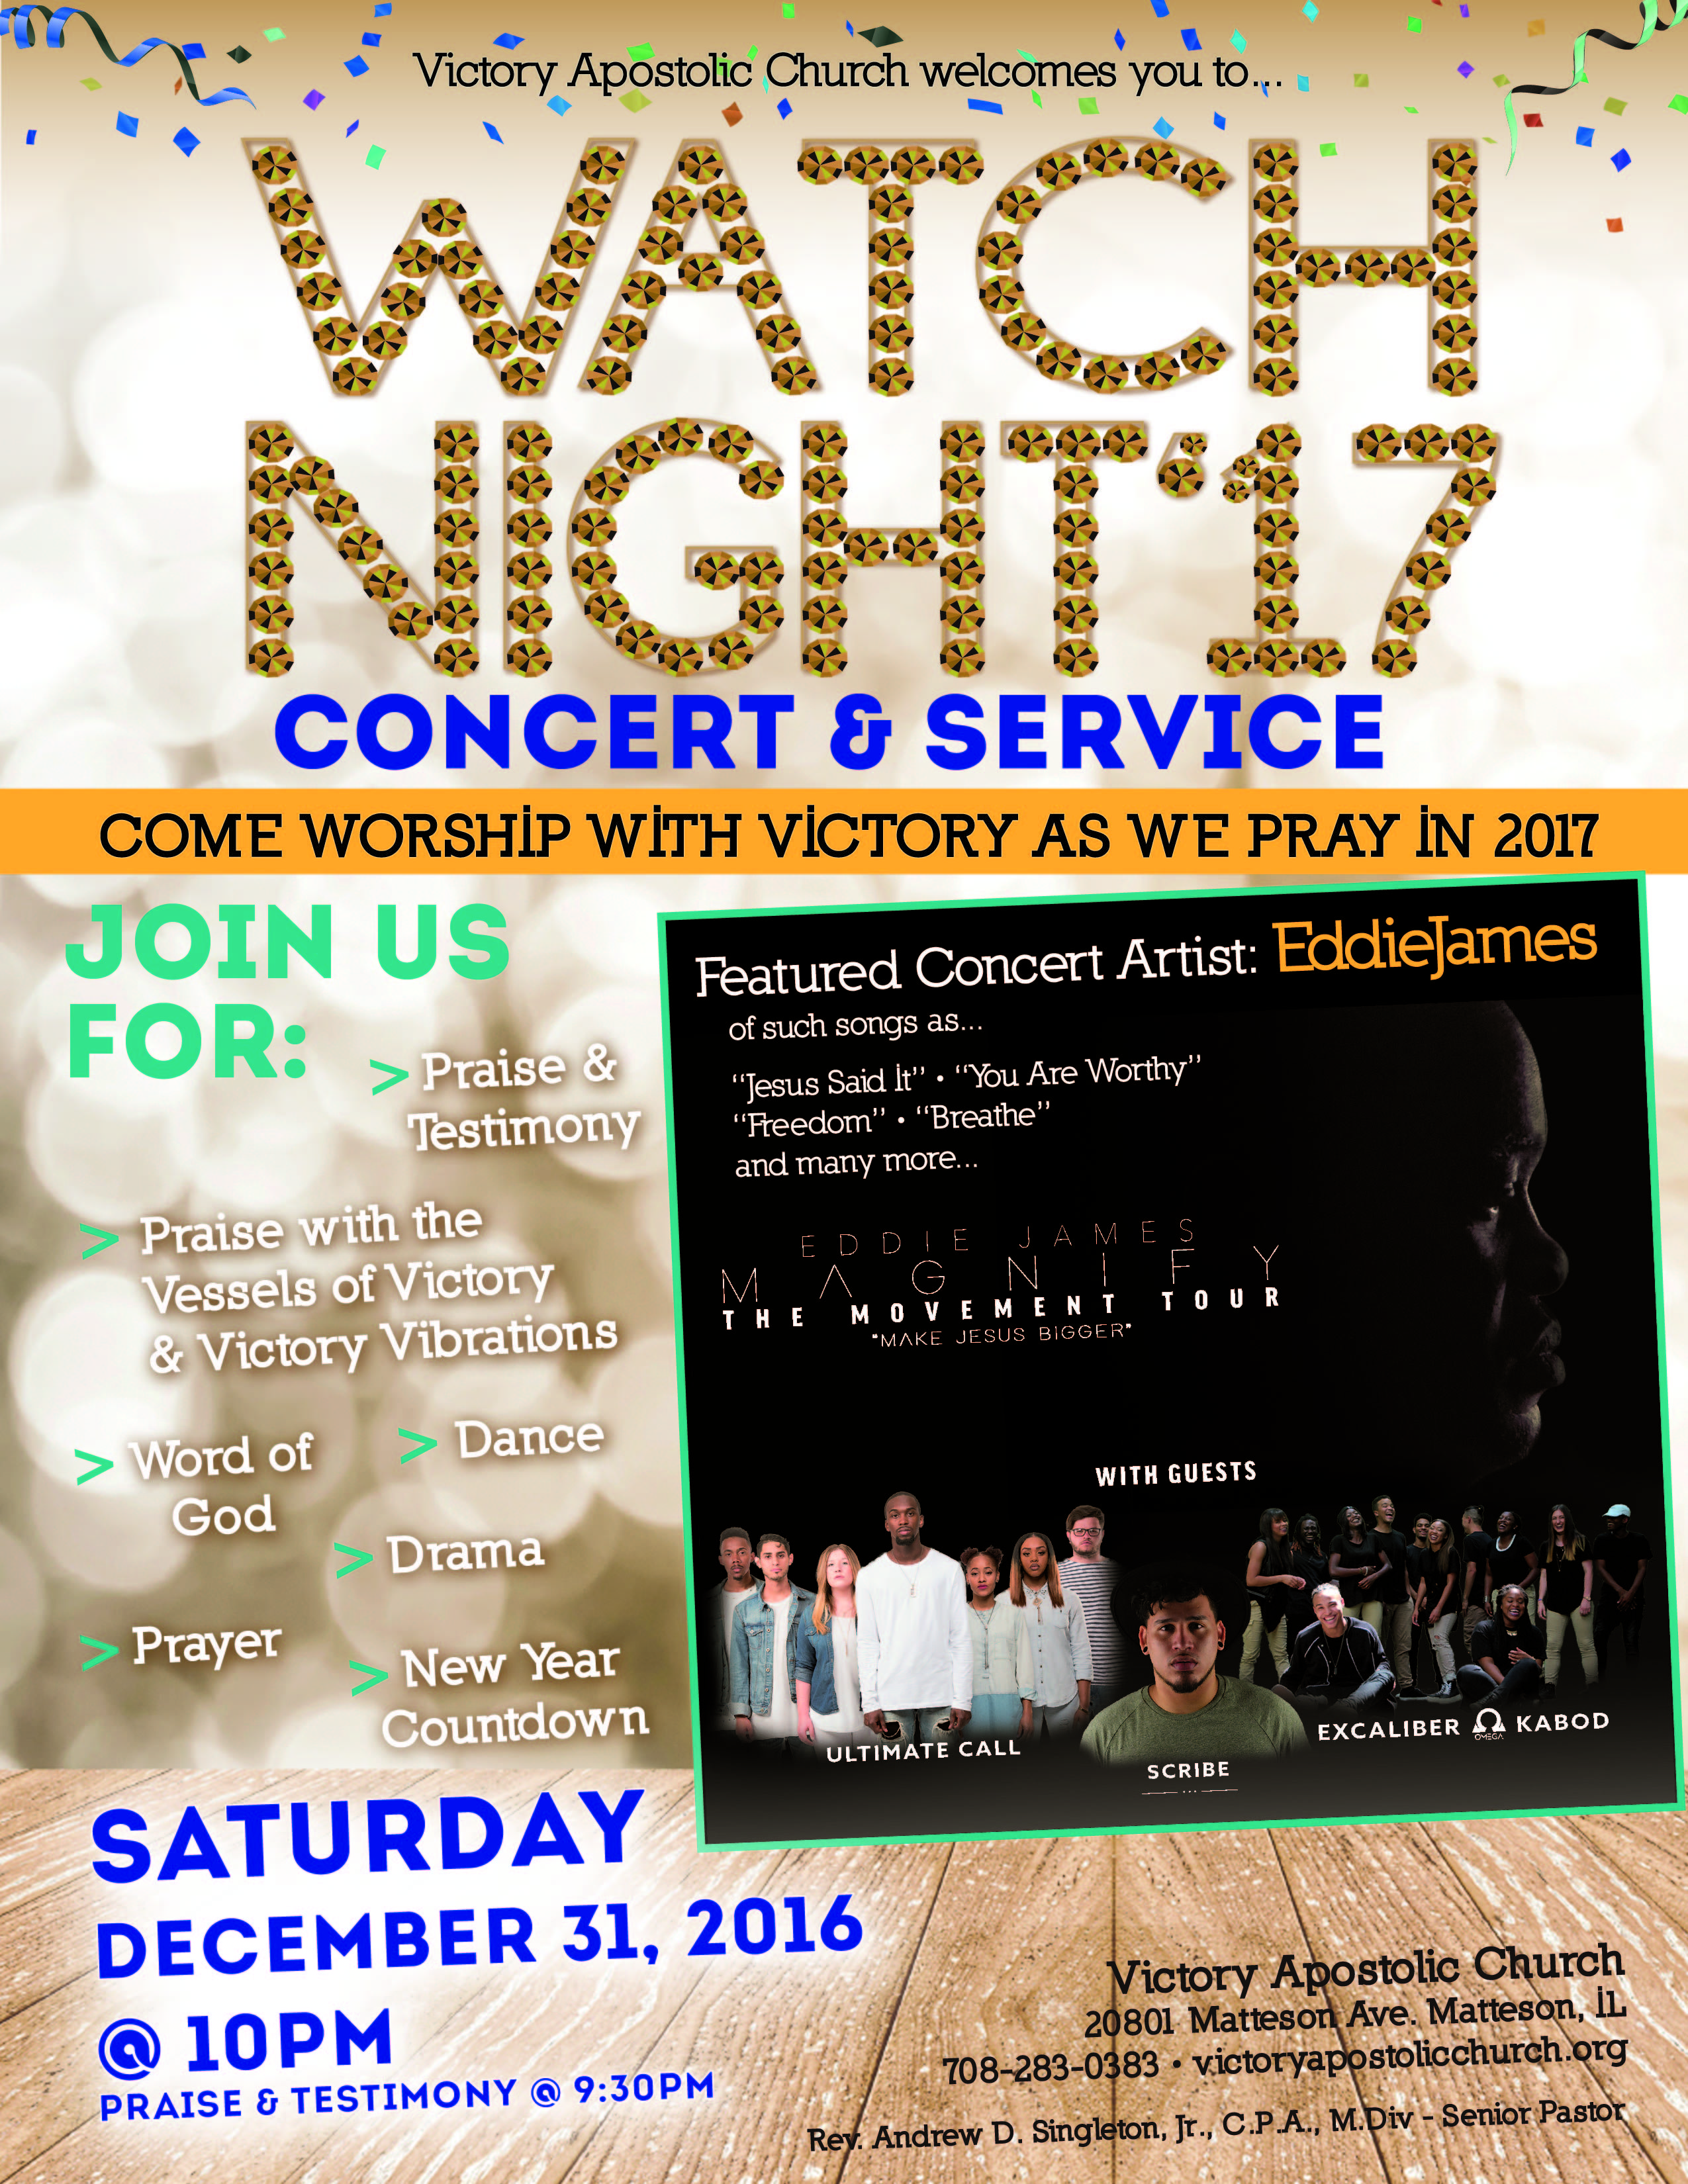 Victory Apostolic Church Welcomes You to their Watch Night